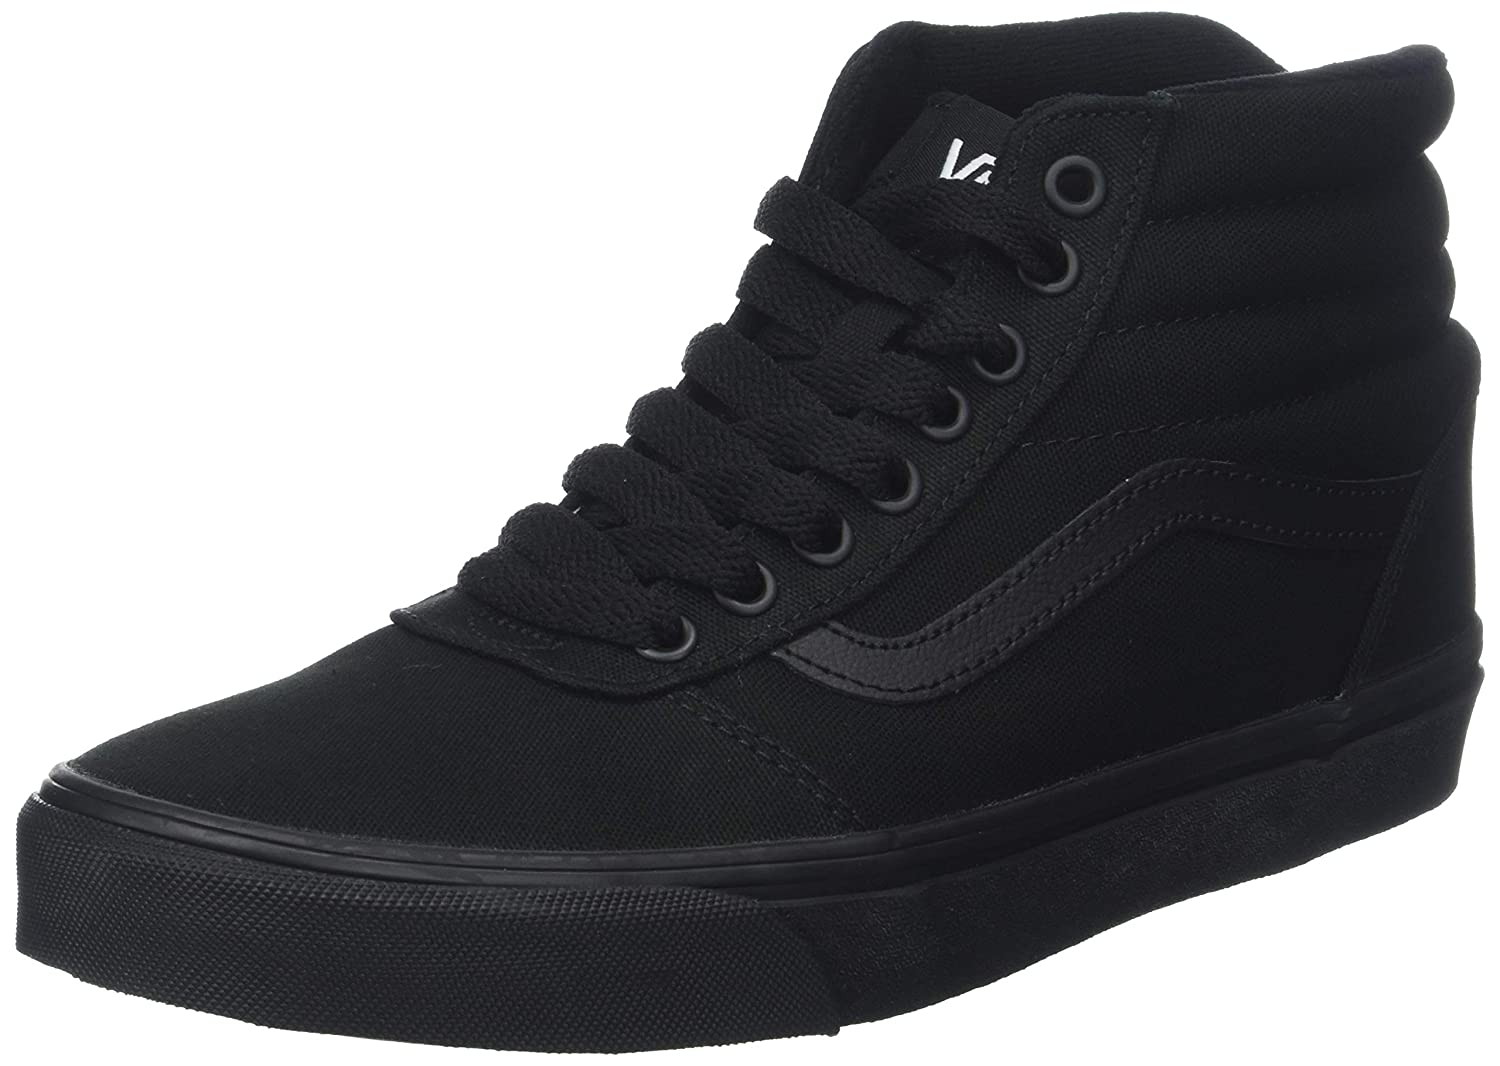 f1b3a76386 Vans Men's Ward High Top, Sneakers, Black, 6.5 M Us